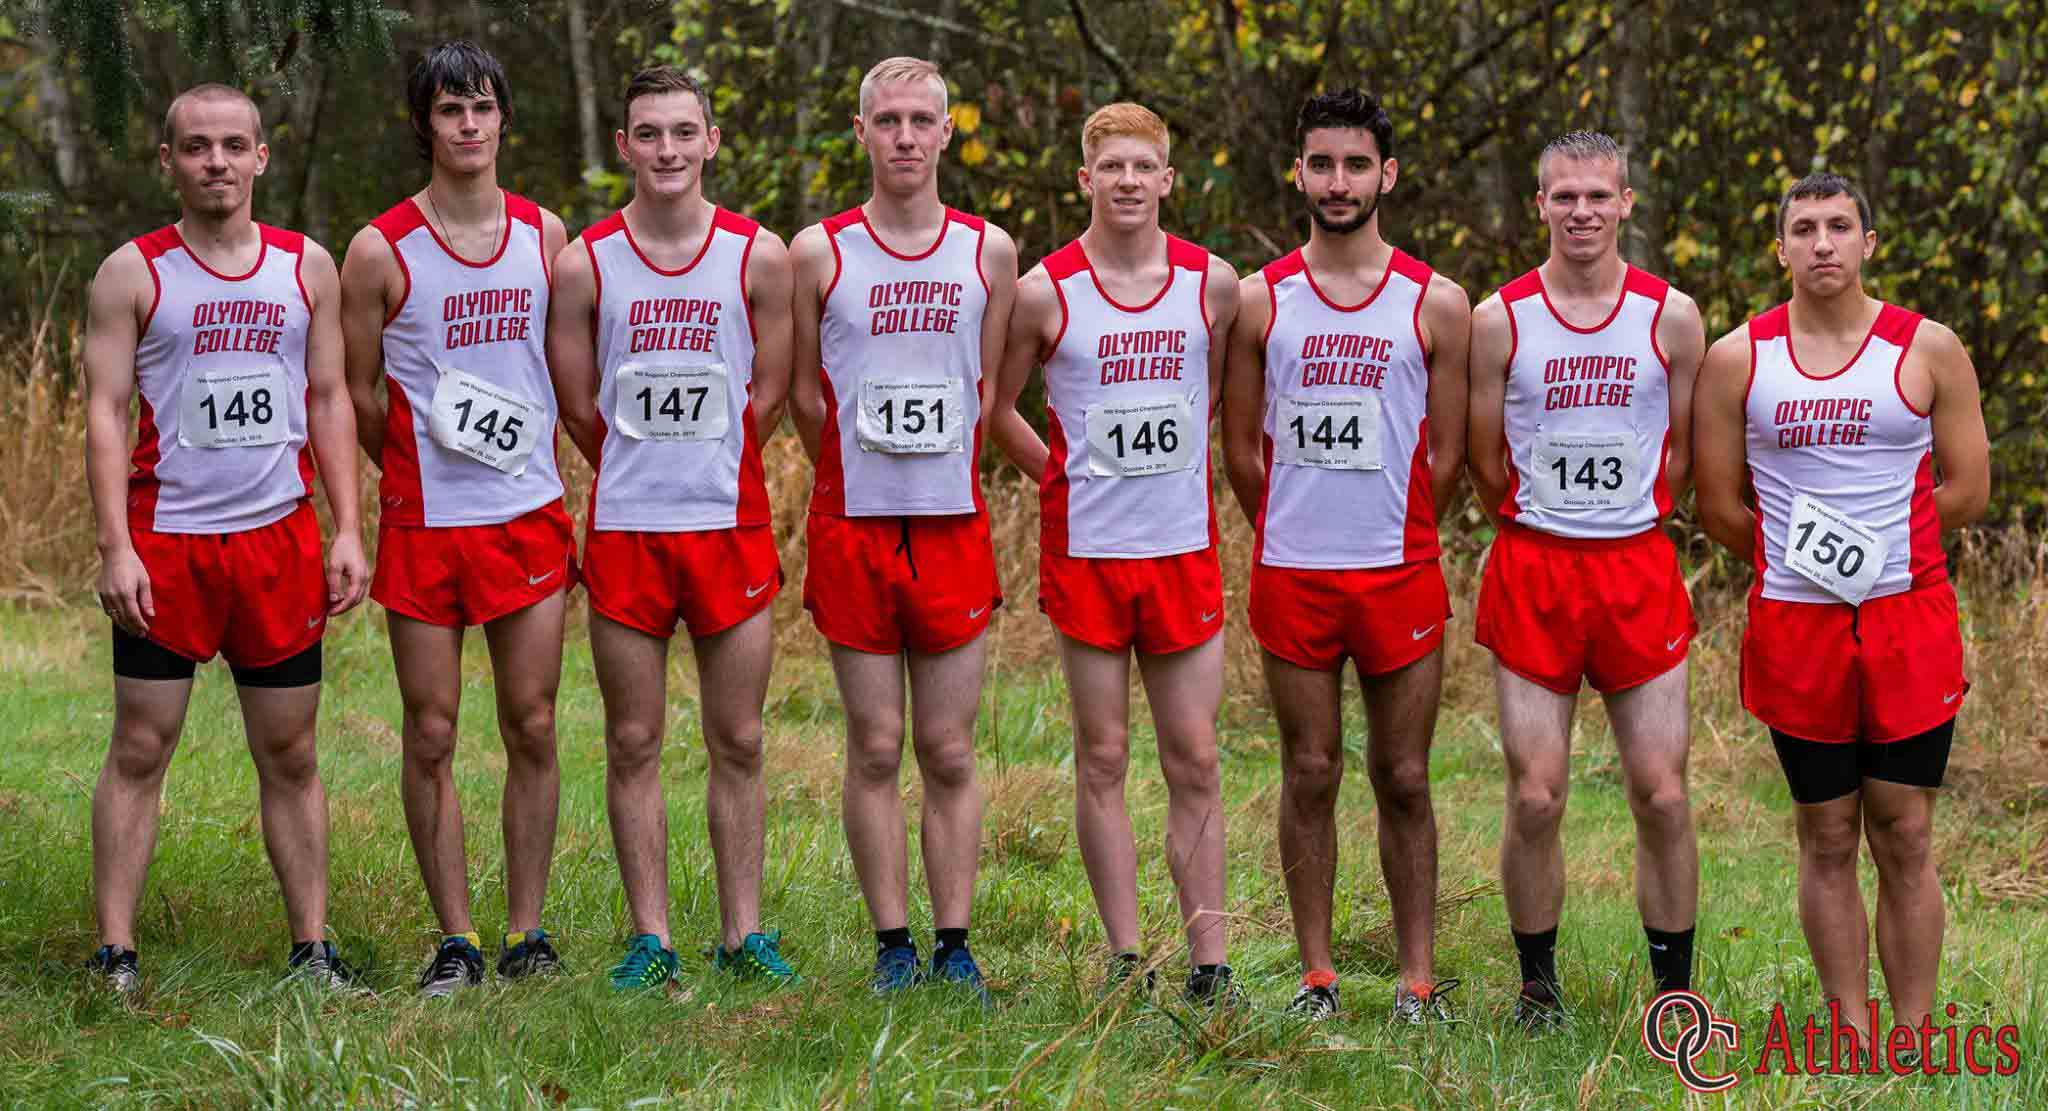 2016 Olympic Men's Cross Country